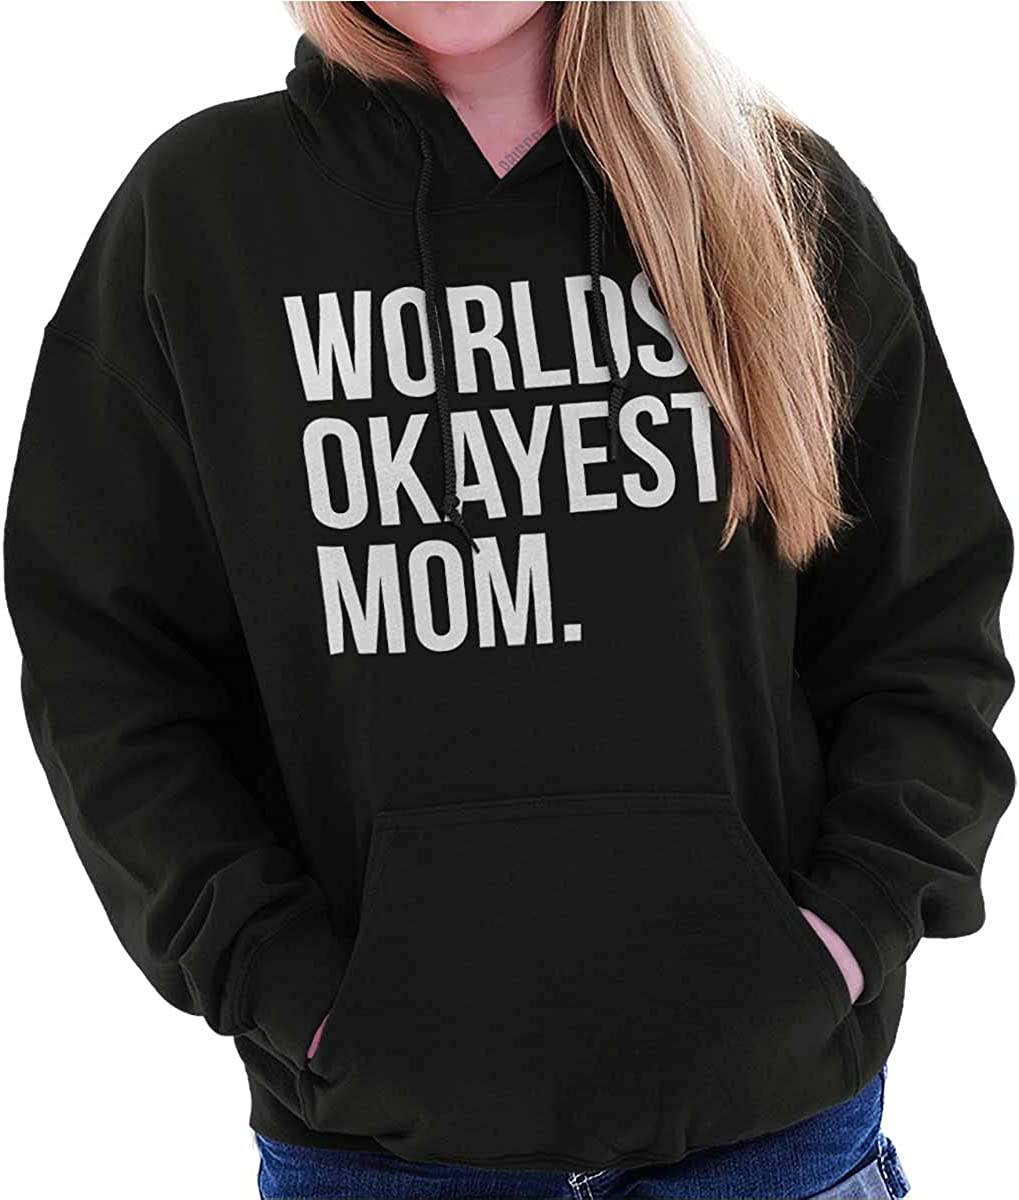 World. Okayest. Mom. Funny Family Sweatshirt Direct sale of manufacturer It is very popular Hoodie Women